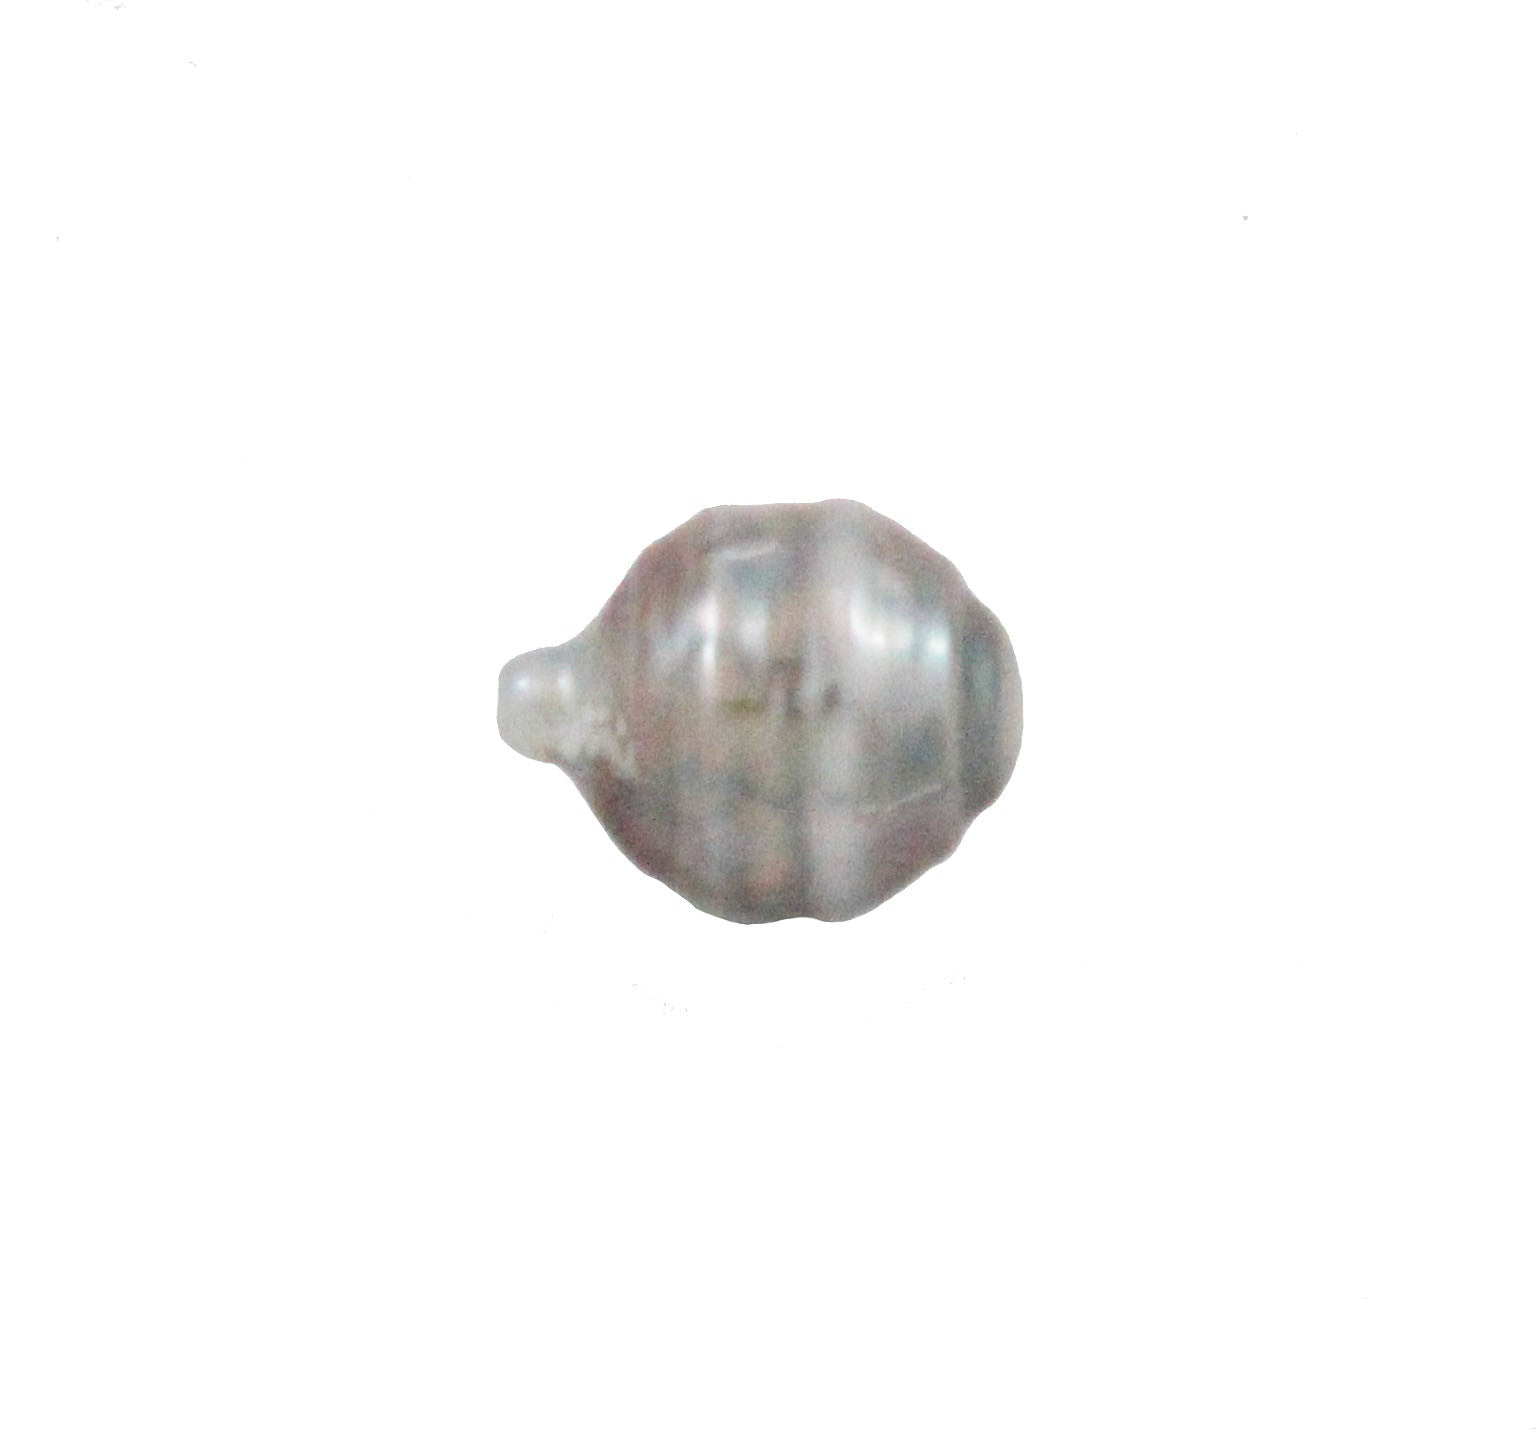 Tahitian pearl undrilled 0.94gr mm 11.11x8.64mm - Purchase only with custom order - Sarah Hughes - 2